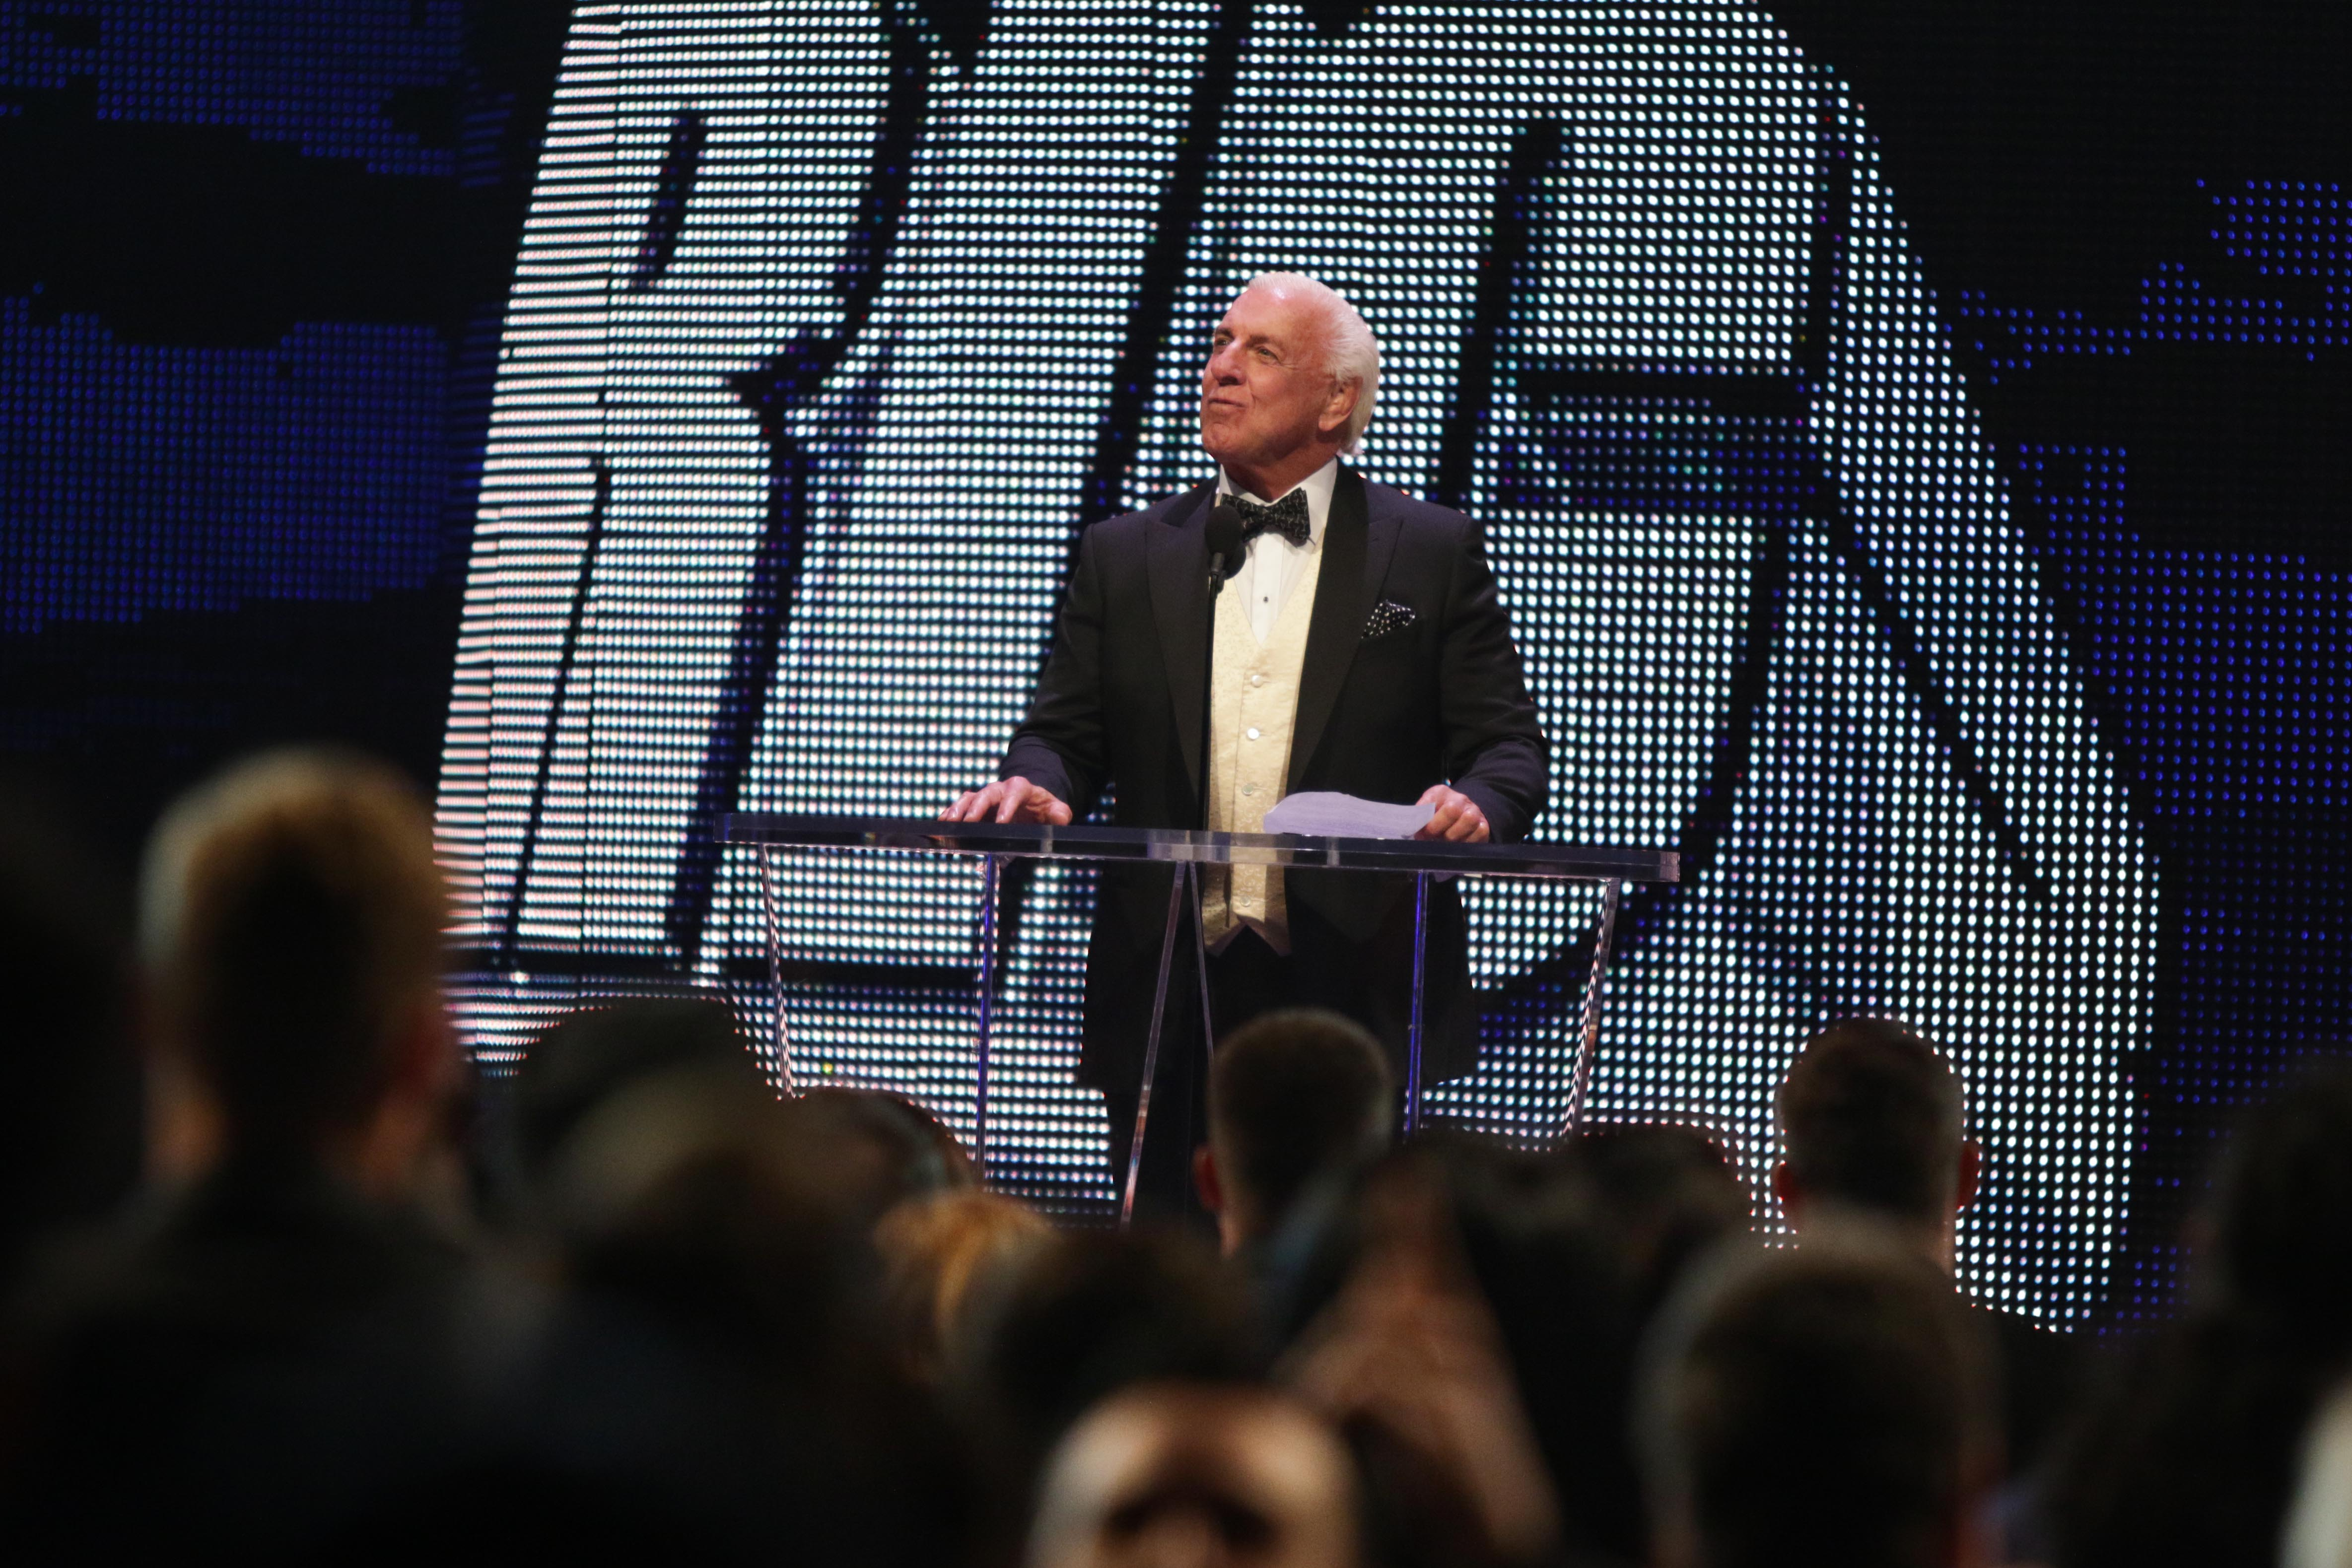 <div class='meta'><div class='origin-logo' data-origin='none'></div><span class='caption-text' data-credit=''>Ric Flair is seen at the WWE Hall of Fame Ceremony, on Saturday, March 28, 2015 in San Jose, CA. (Don Feria/AP Images for WWE)</span></div>